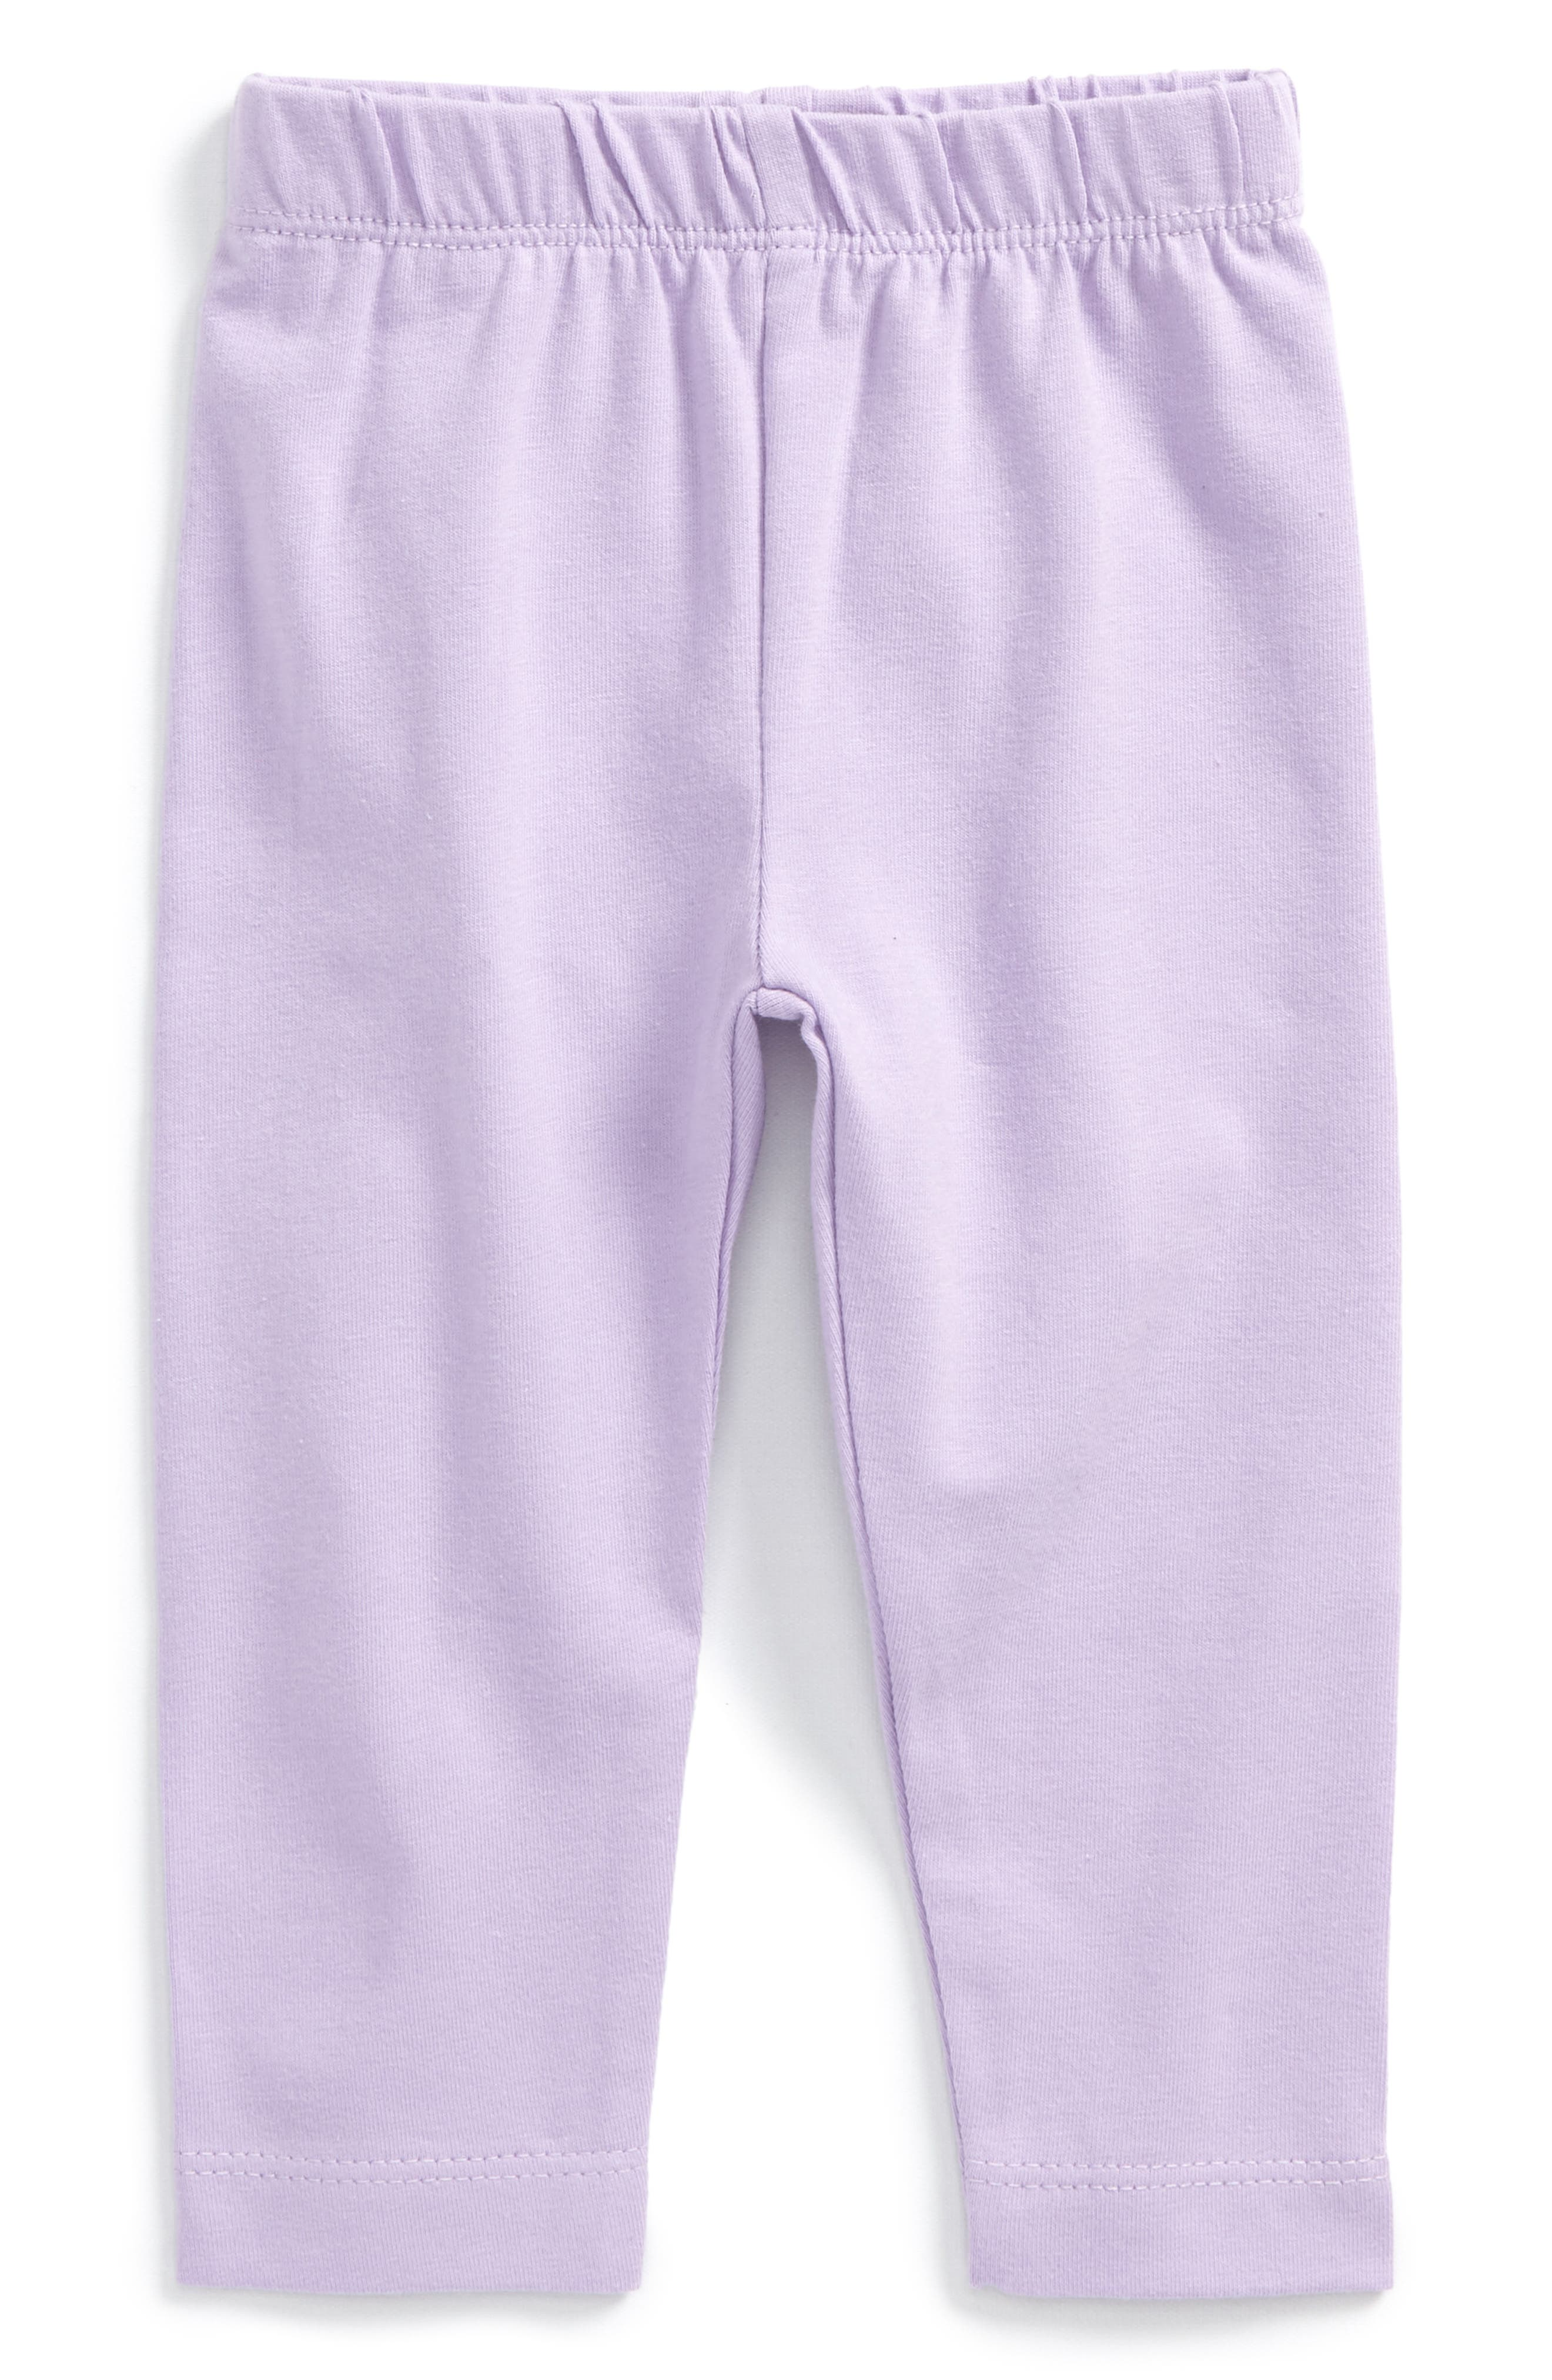 Stretch Leggings,                         Main,                         color, Lilac